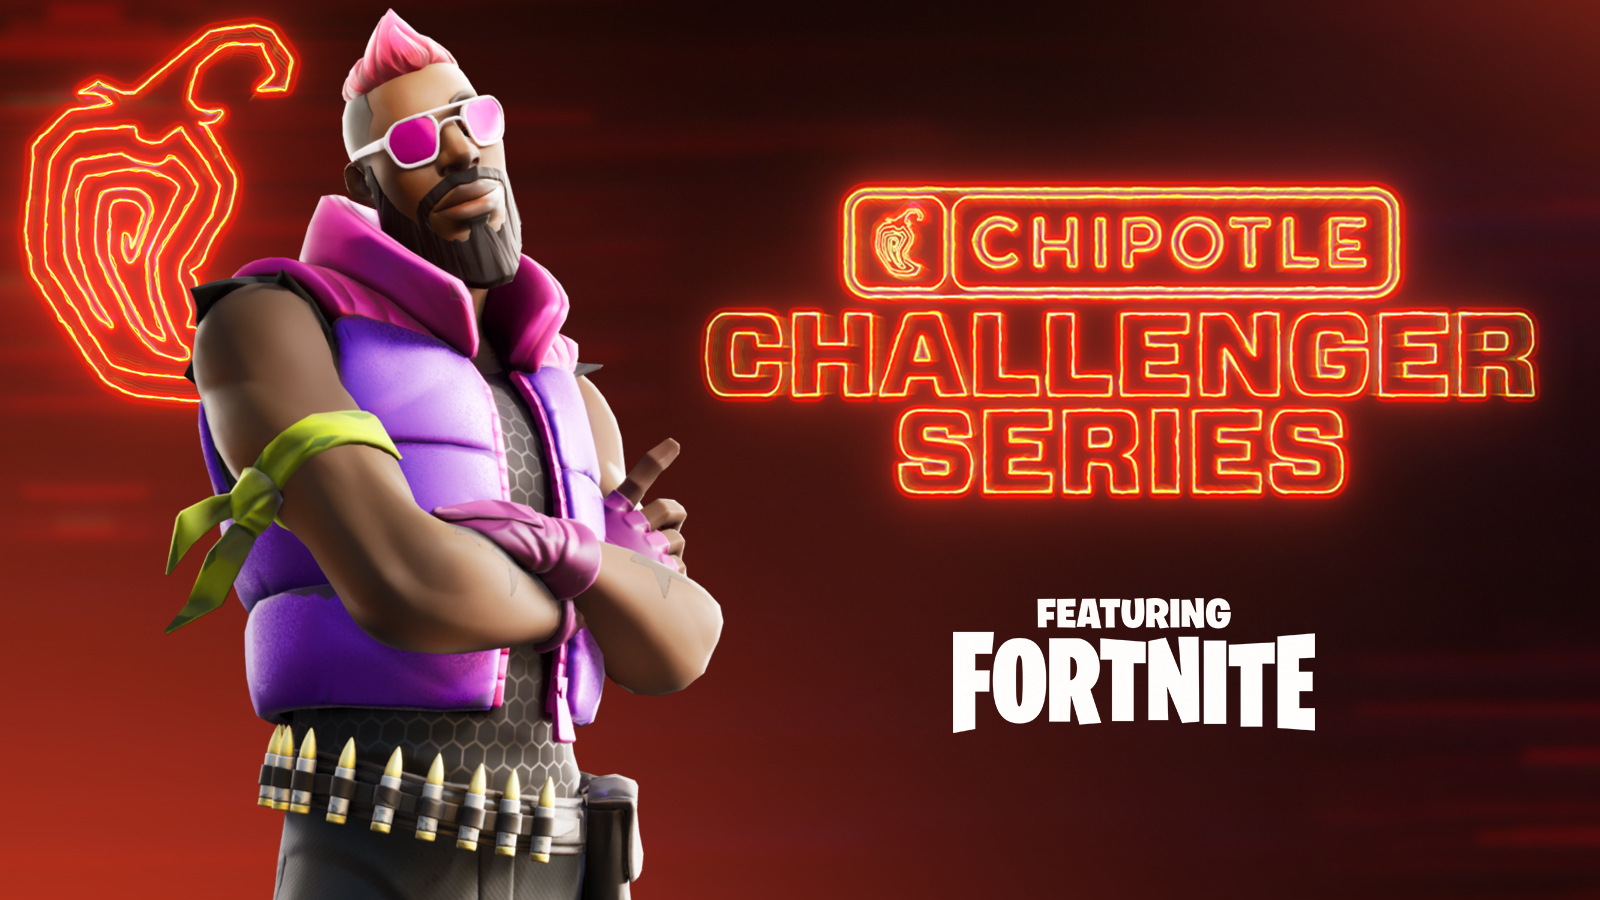 chipotle challenger series results